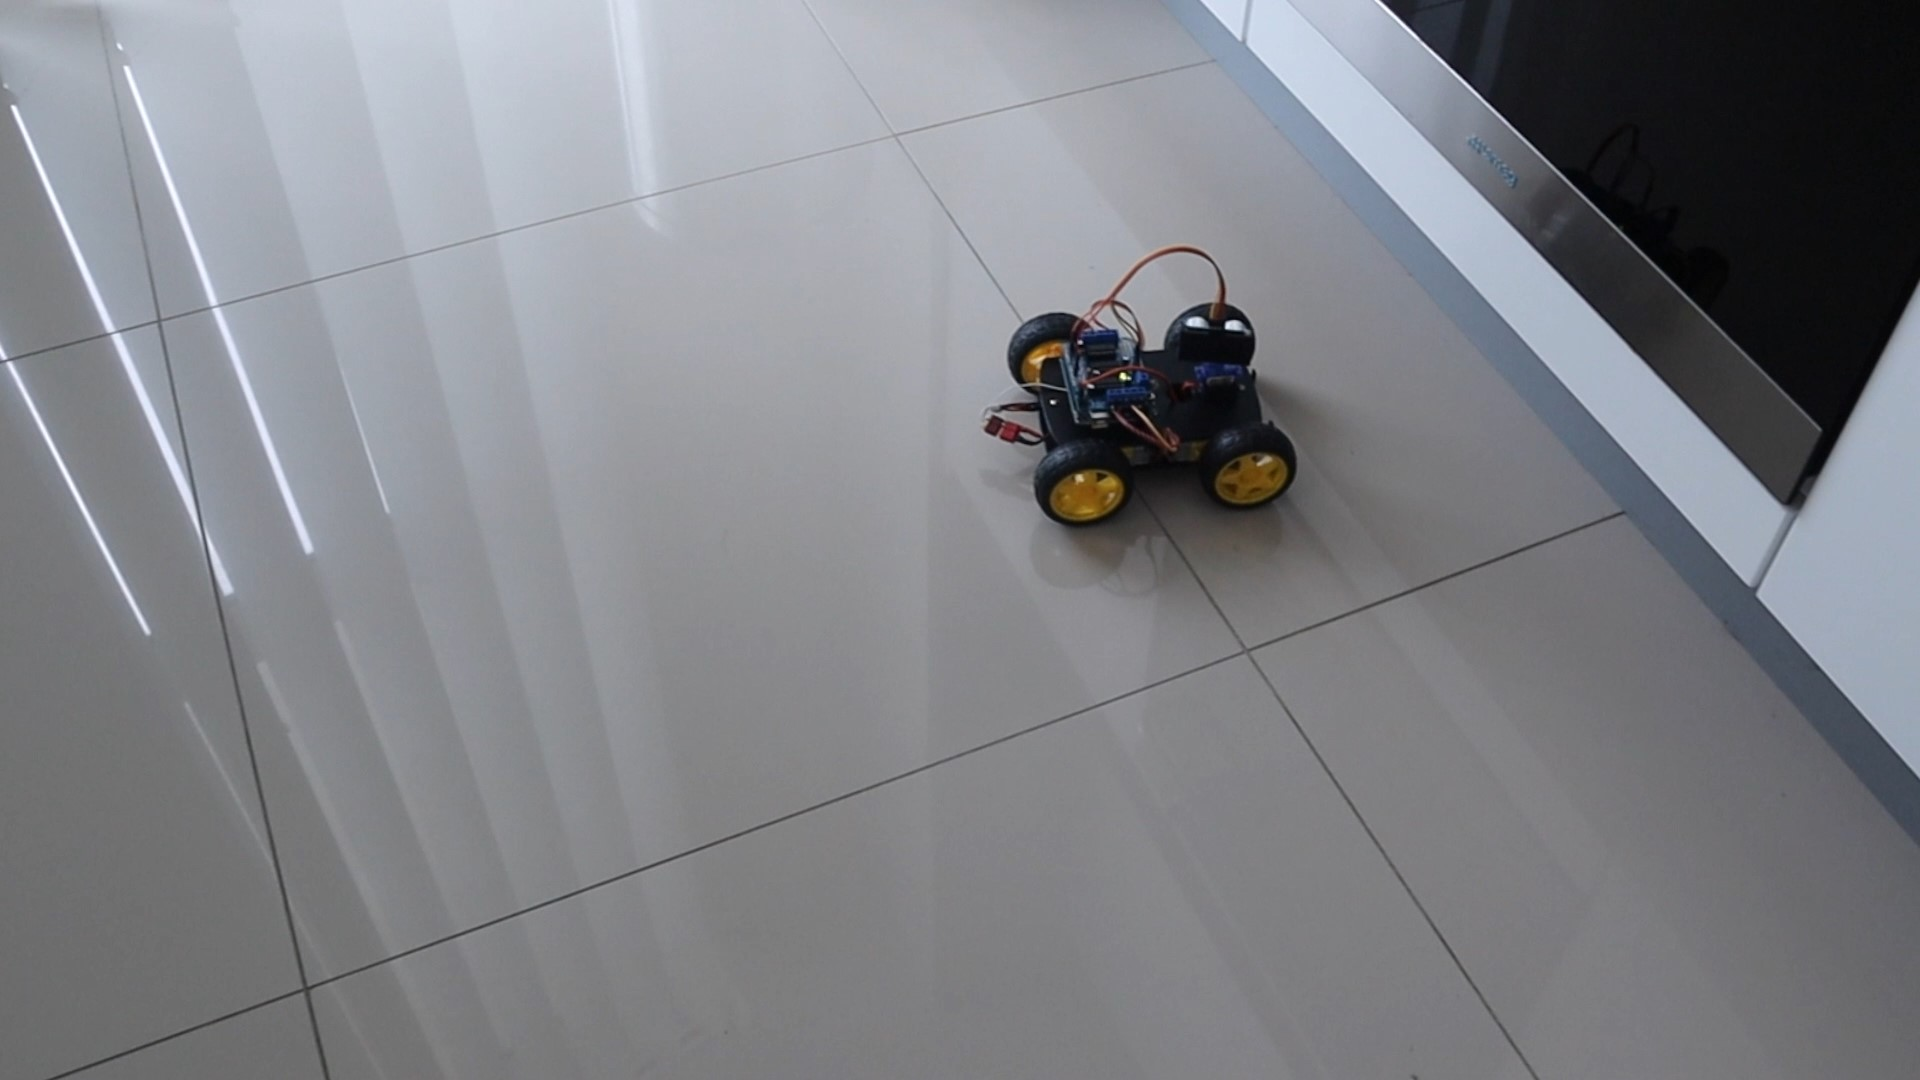 Obstacle Avoiding Robot Running On Tiles